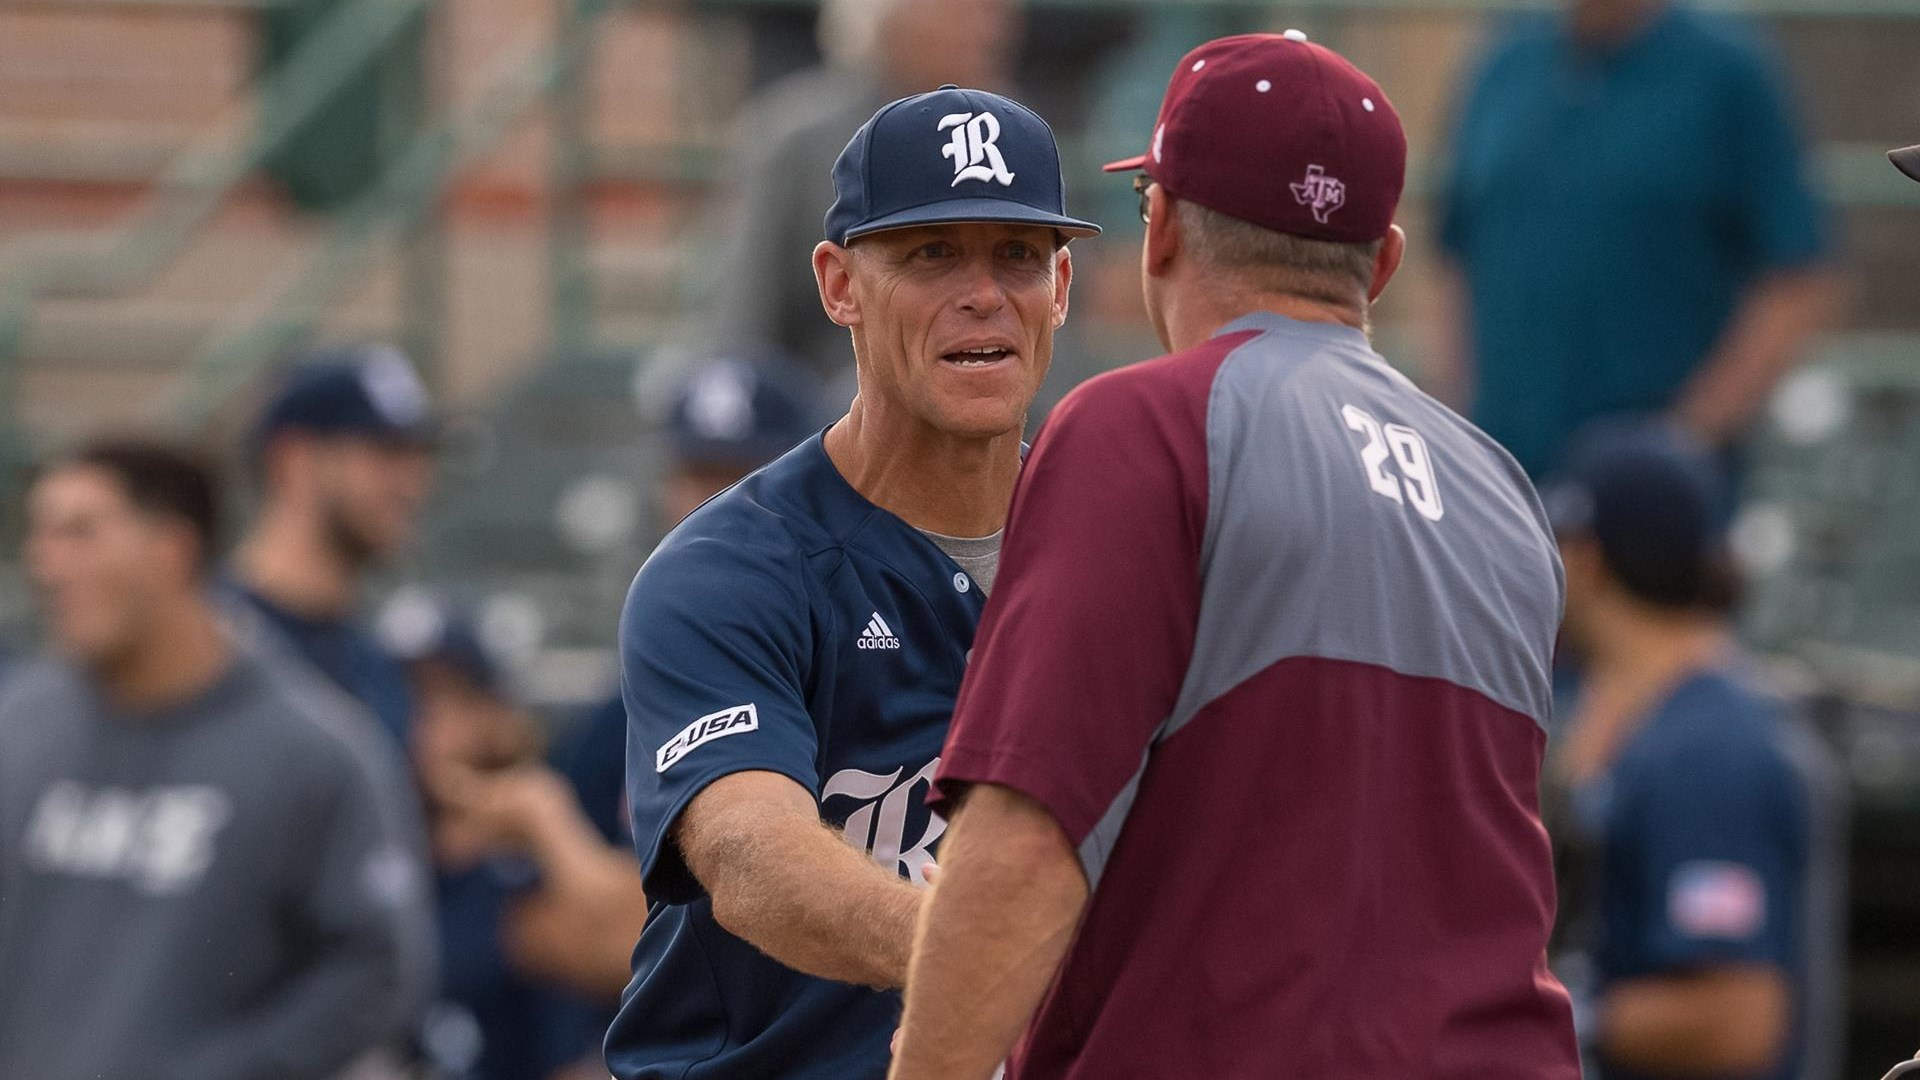 official athletics page of the rice owls | rice university athletics